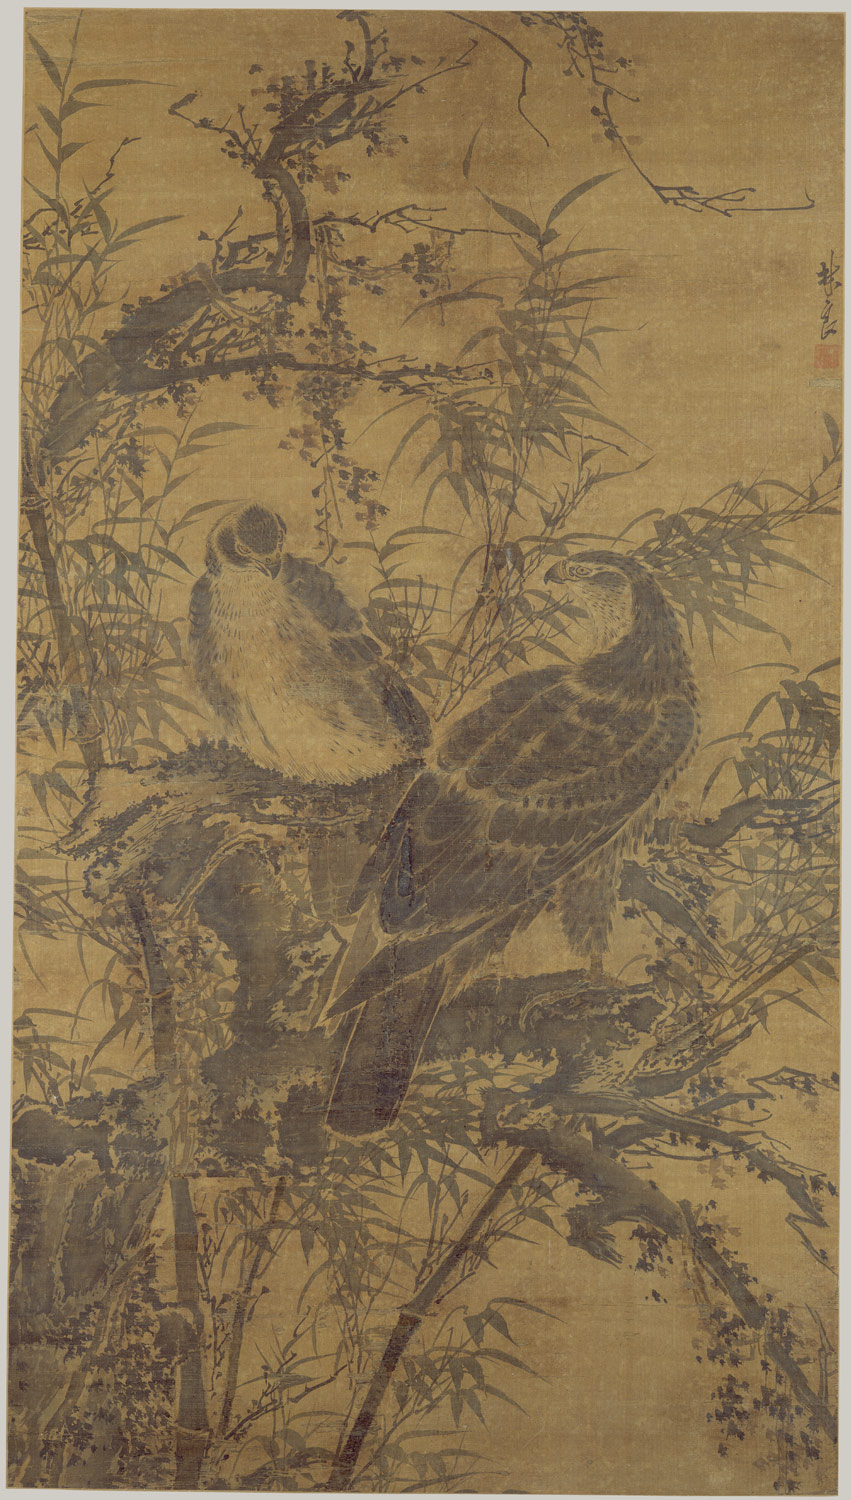 Two Hawks in a Thicket